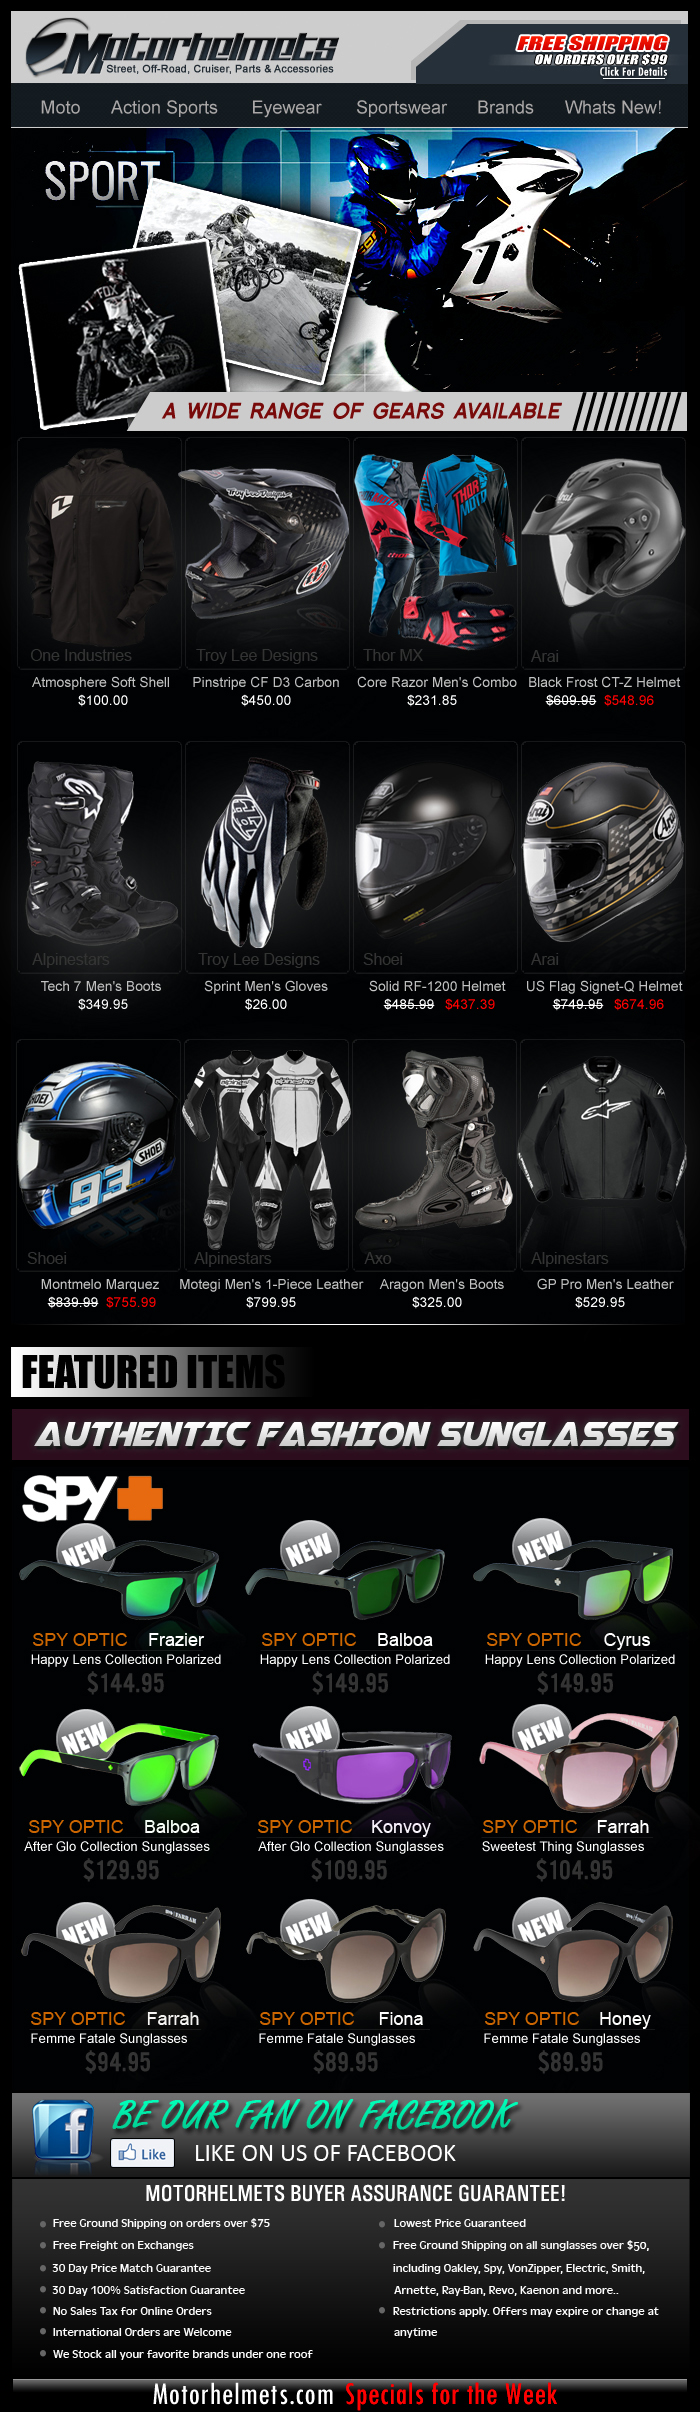 Gear up for Summer...Premium Motorcycle Gear from TLD, ThorMX, Alpinestars and more!